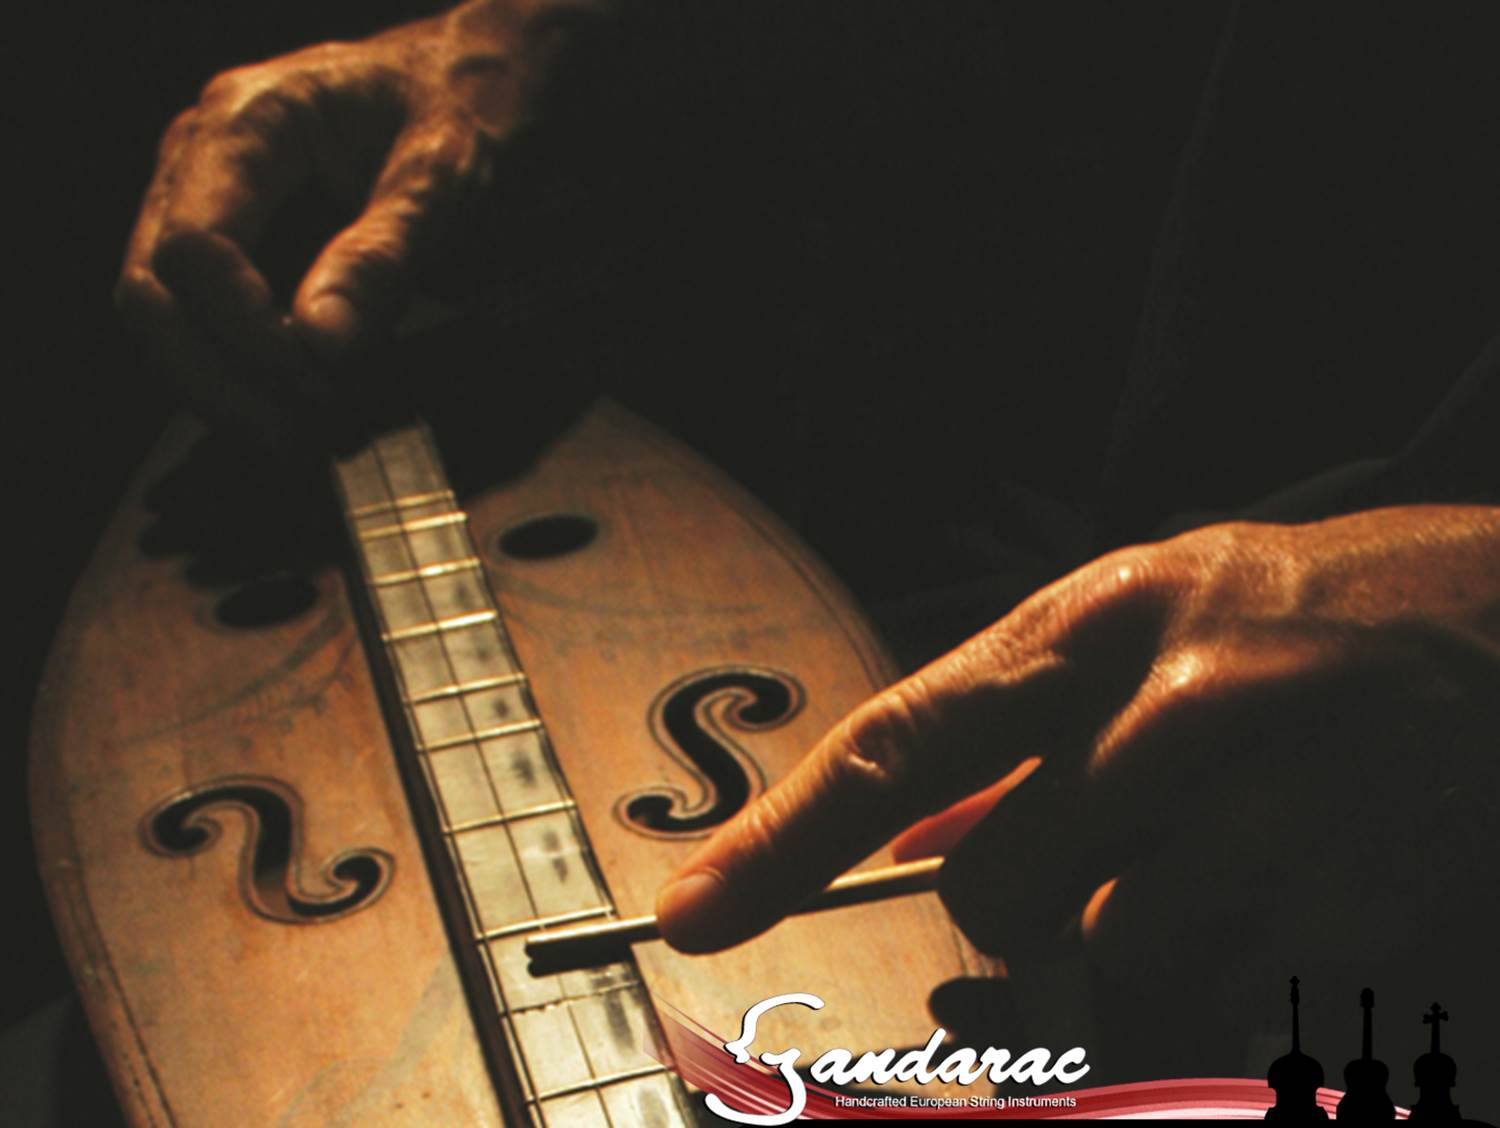 03 - ancient dulcimer